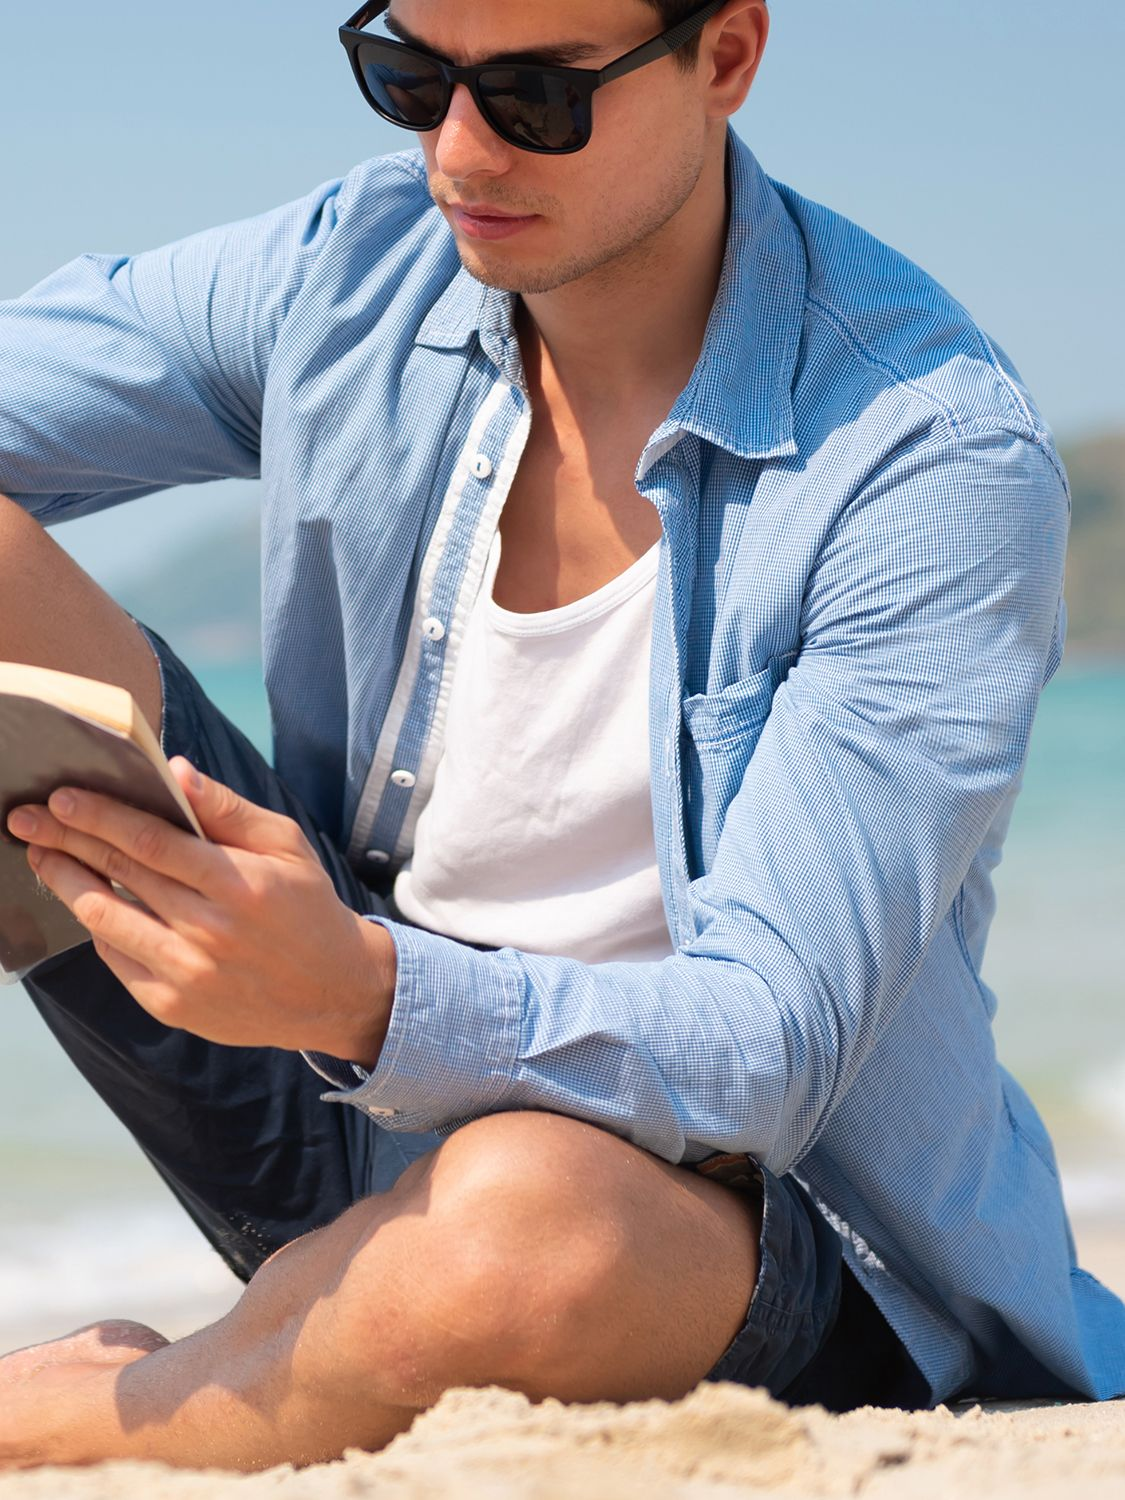 Men's outfit idea for 2021 with blue micro plaid casual shirt, white plain tank top, navy cotton shorts, black sandals. Suitable for spring and summer.